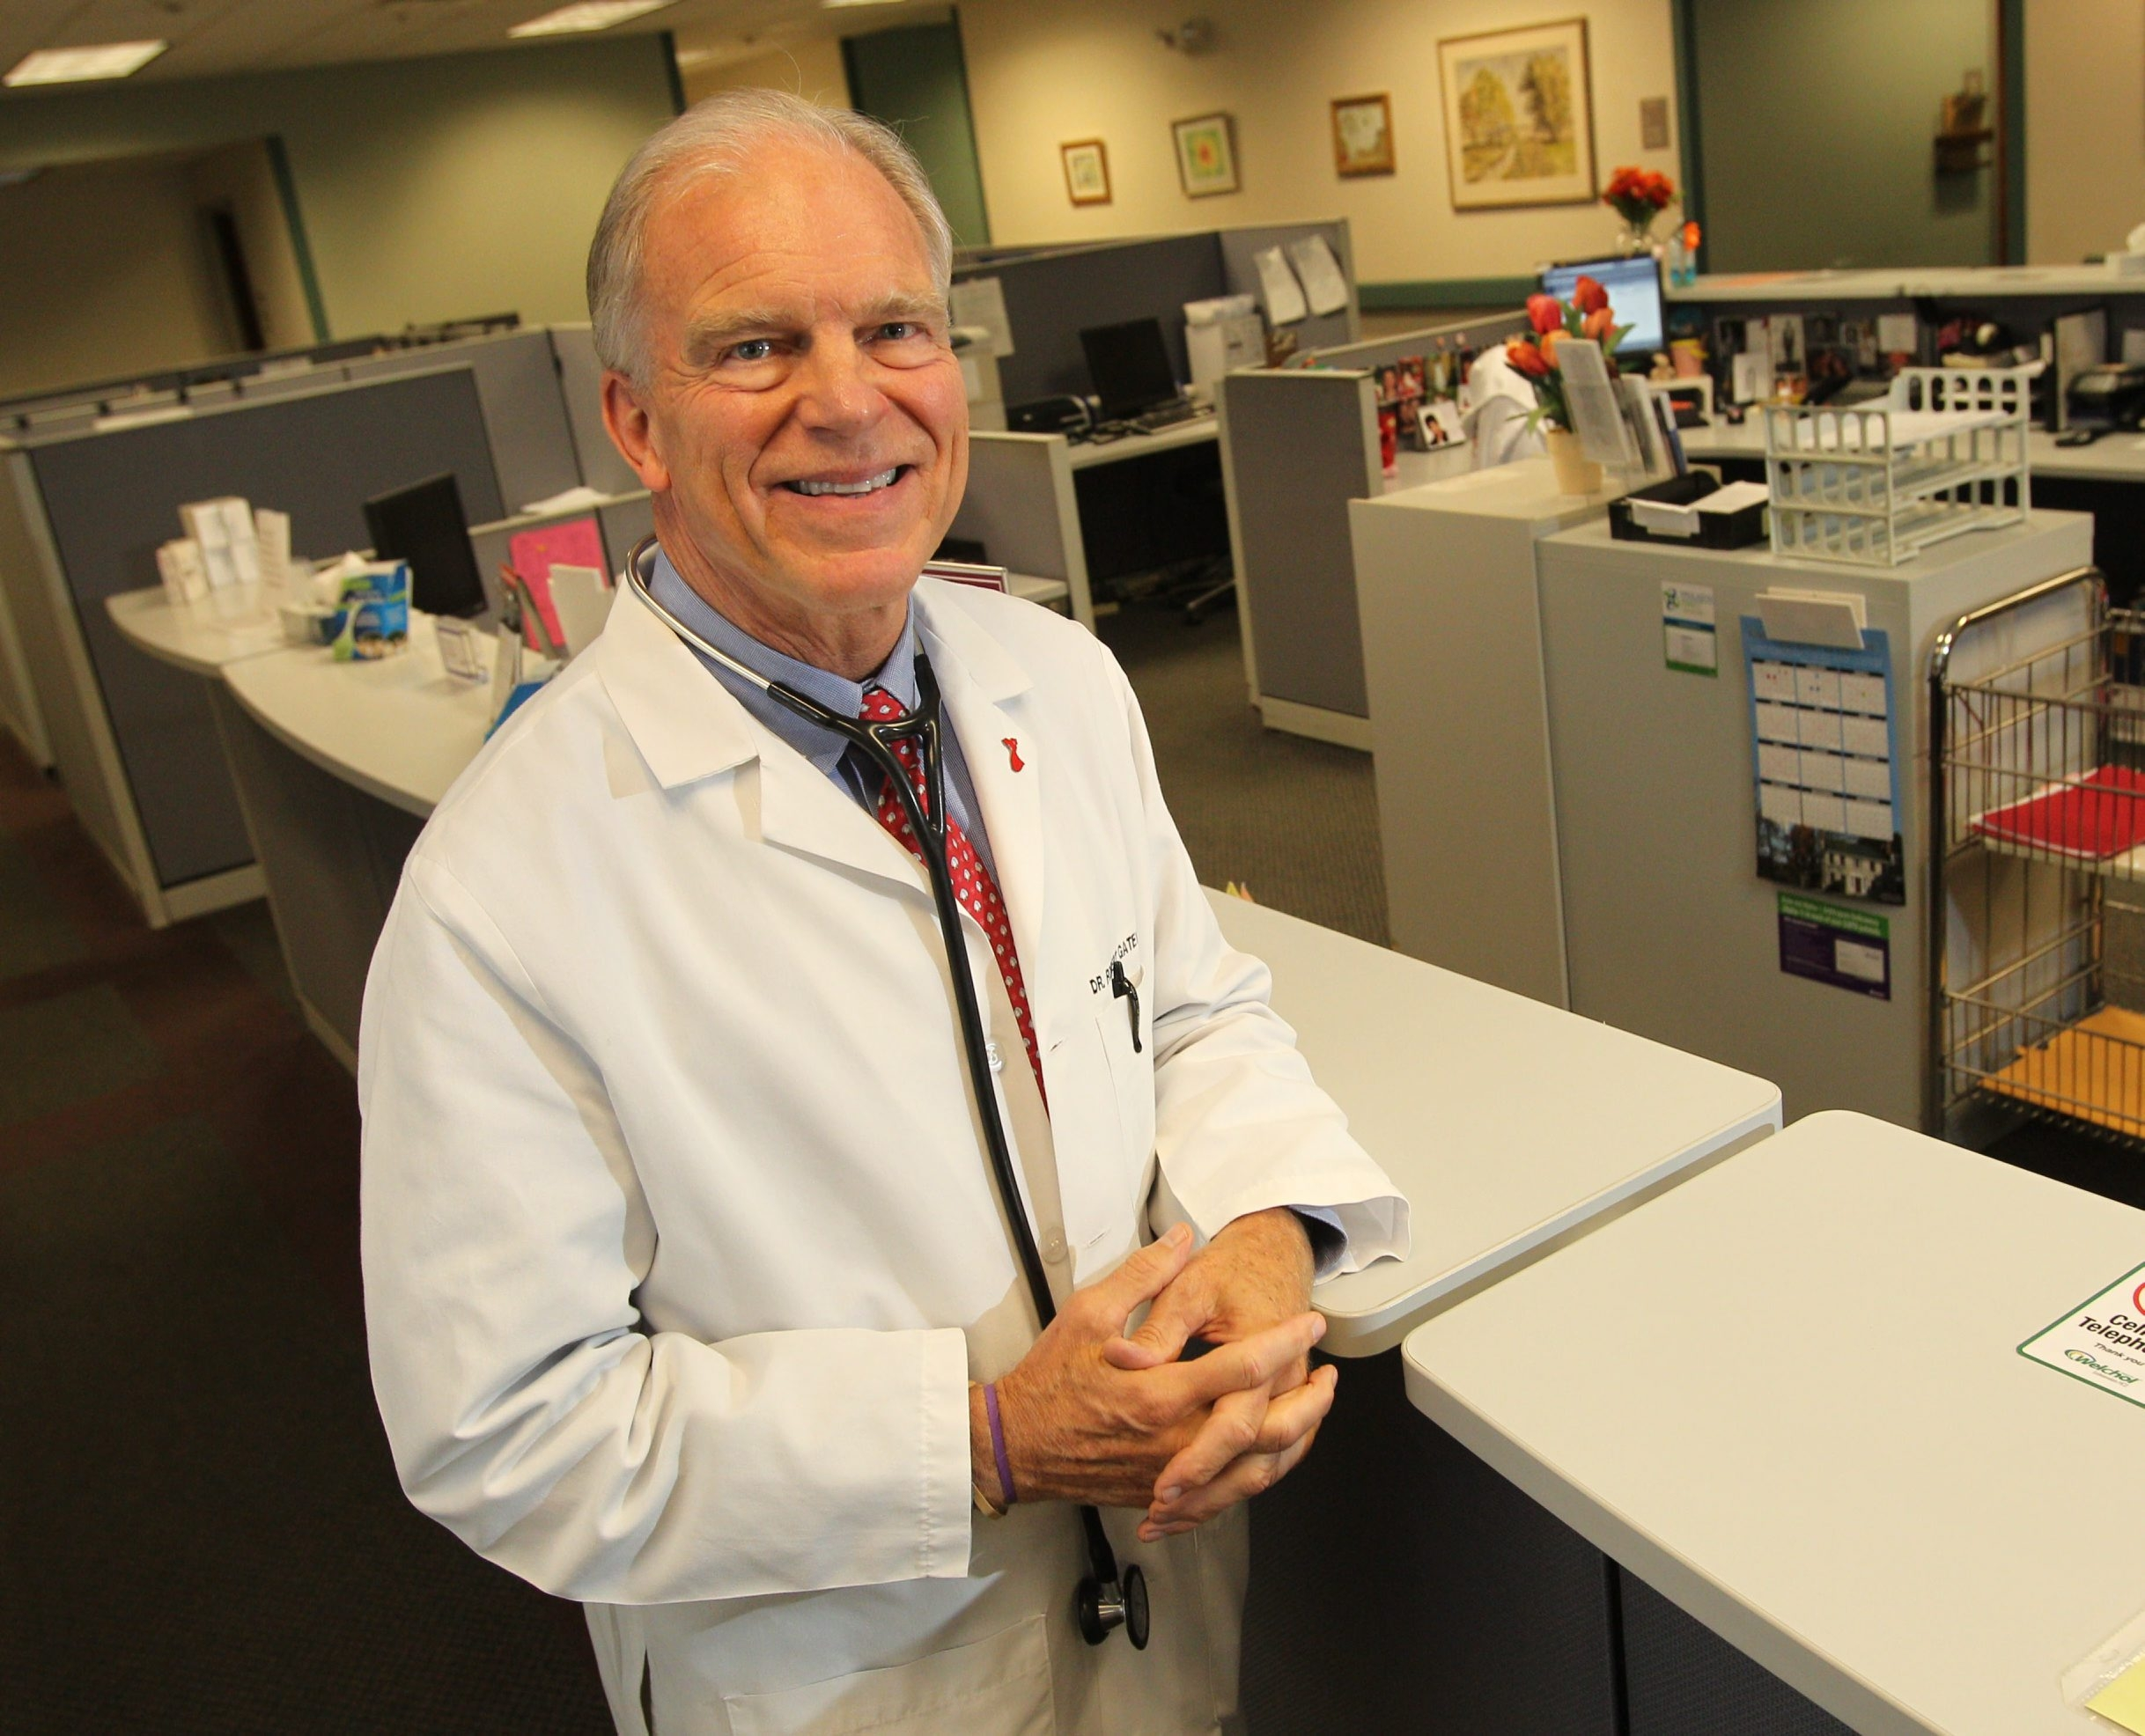 Sharon Cantillon/Buffalo News  'With health care costs spiraling out of control, we need to do something to pull in the reins.' - Dr. Robert Gatewood, of Buffalo Cardiology and Pulmonary Associates in Williamsville